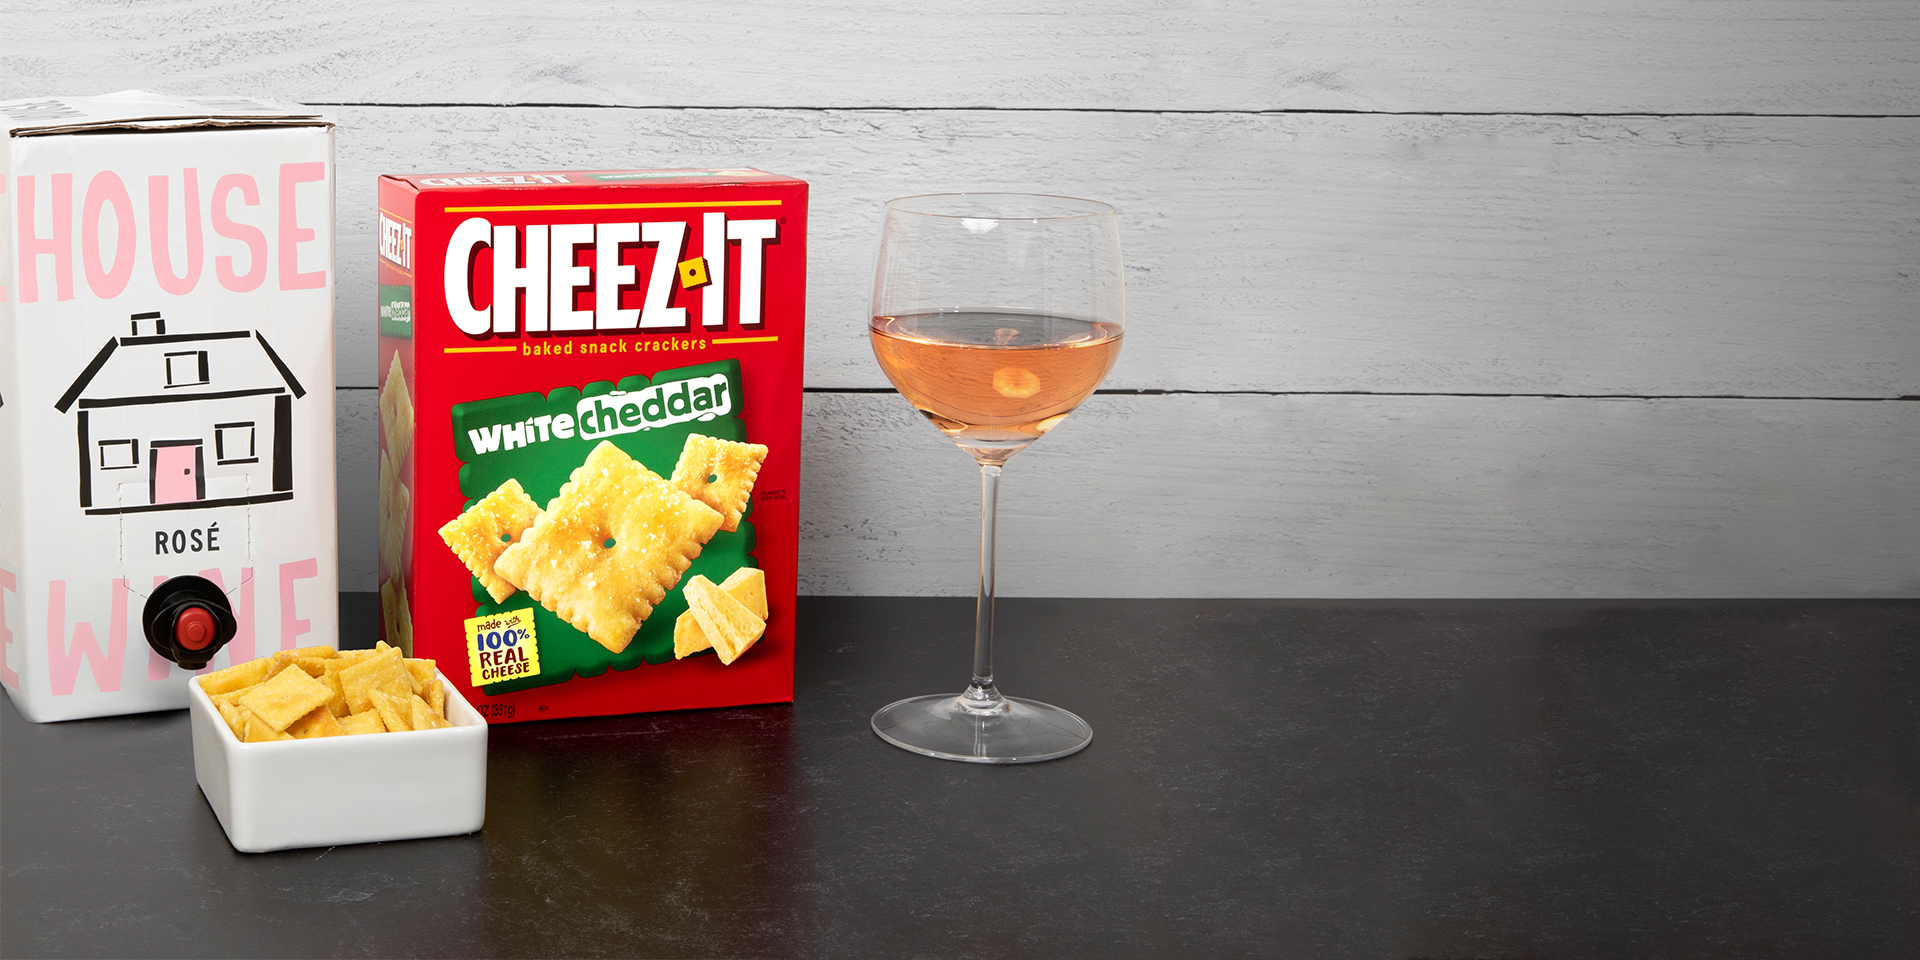 House Wine rosé box and Cheez-It white cheddar crackers on counter